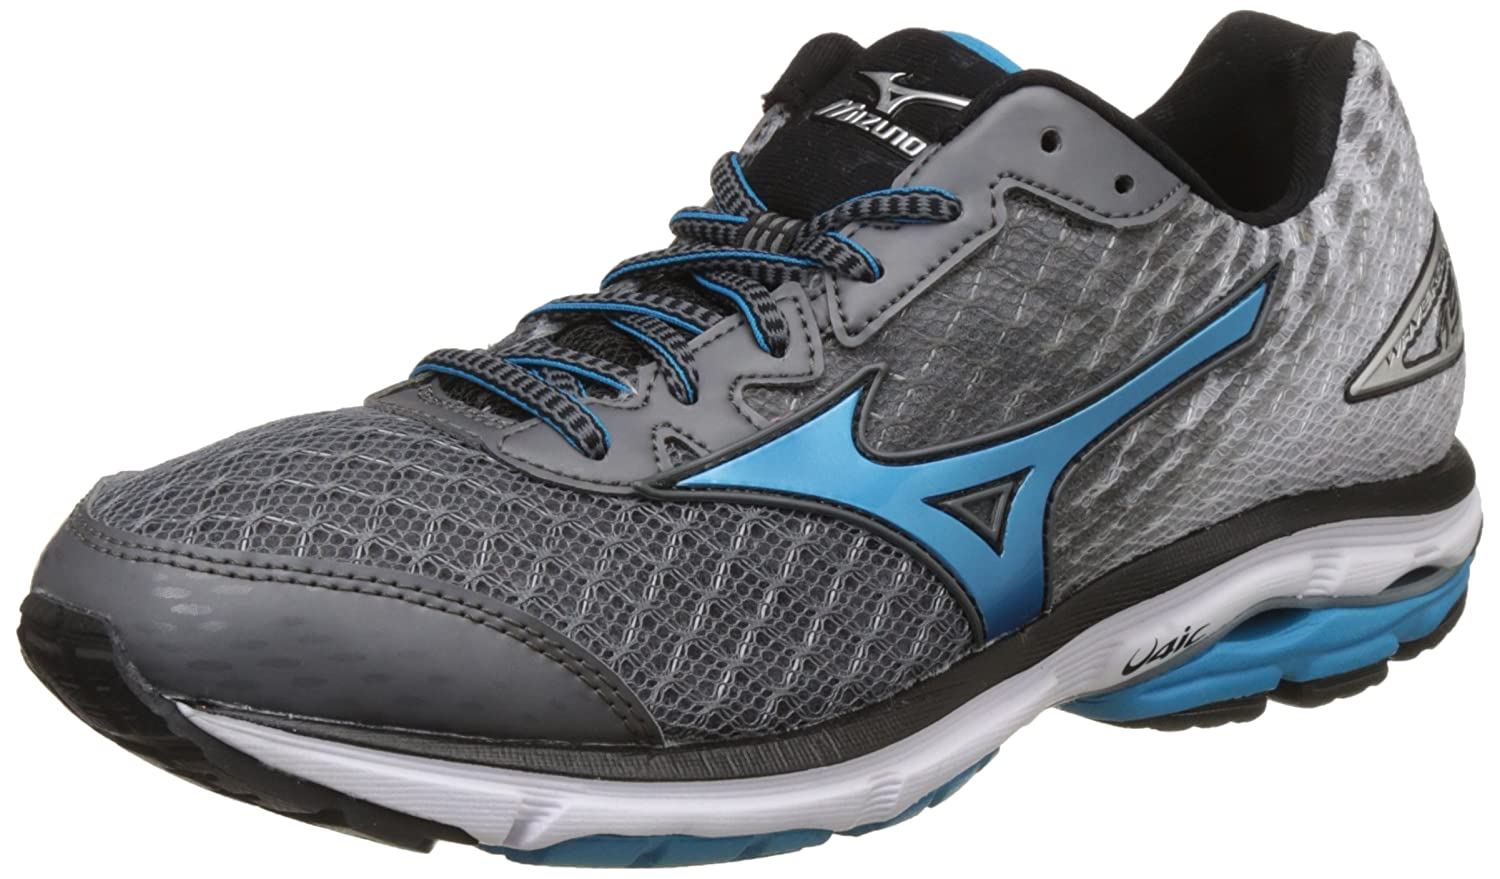 Mizuno Wave Rider 19 Laufschuhe, Herren  43.5|Quiet Shade/ Atomic Blue/ Black